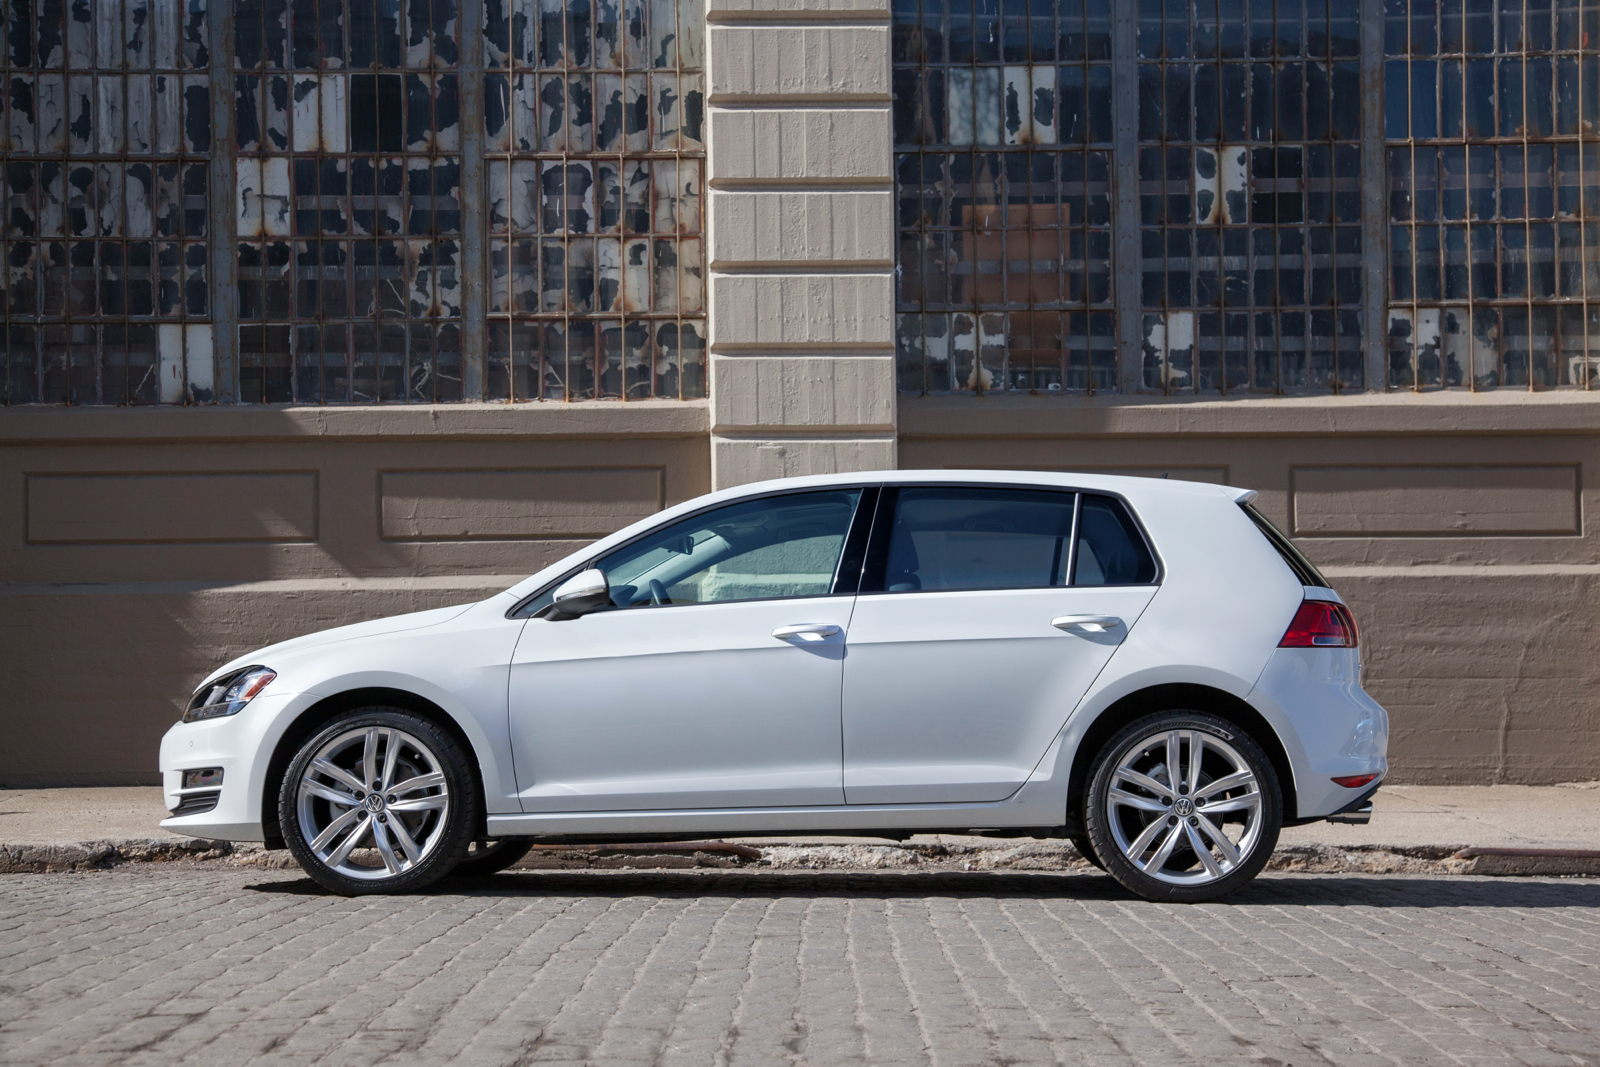 Bmw Of Fresno >> 2015 Volkswagen Golf (VW) Review, Ratings, Specs, Prices, and Photos - The Car Connection